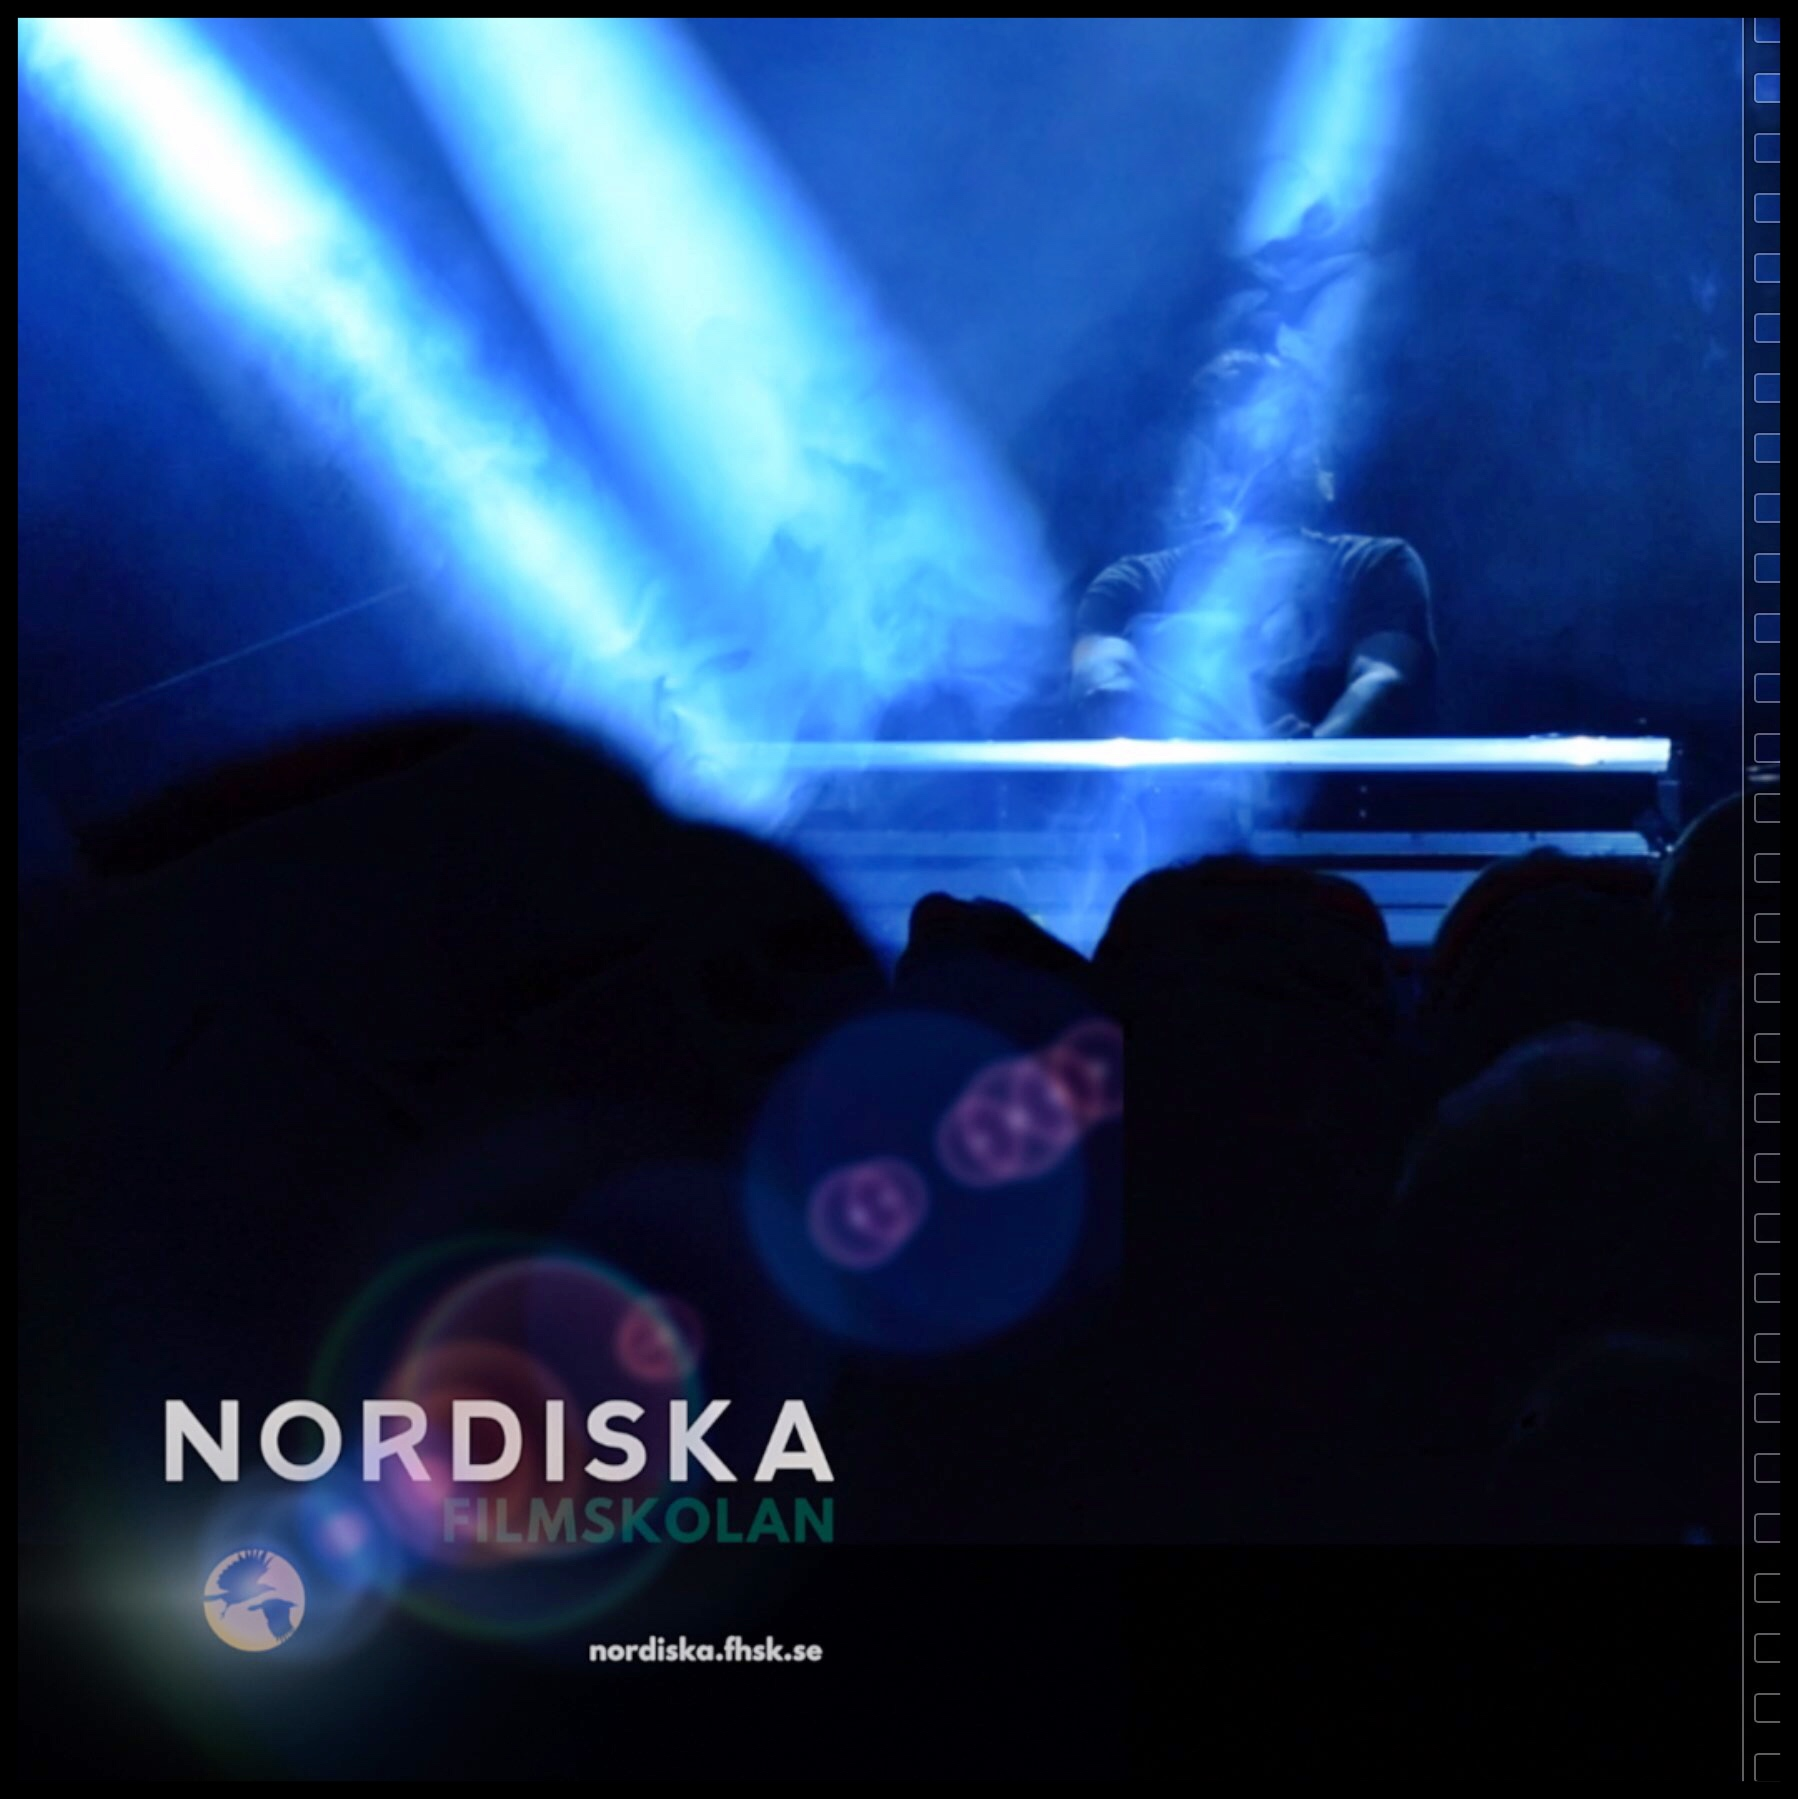 //nordiska.fhsk.se/media/wp-content/uploads/sites/4/2018/05/ingrosso.jpg